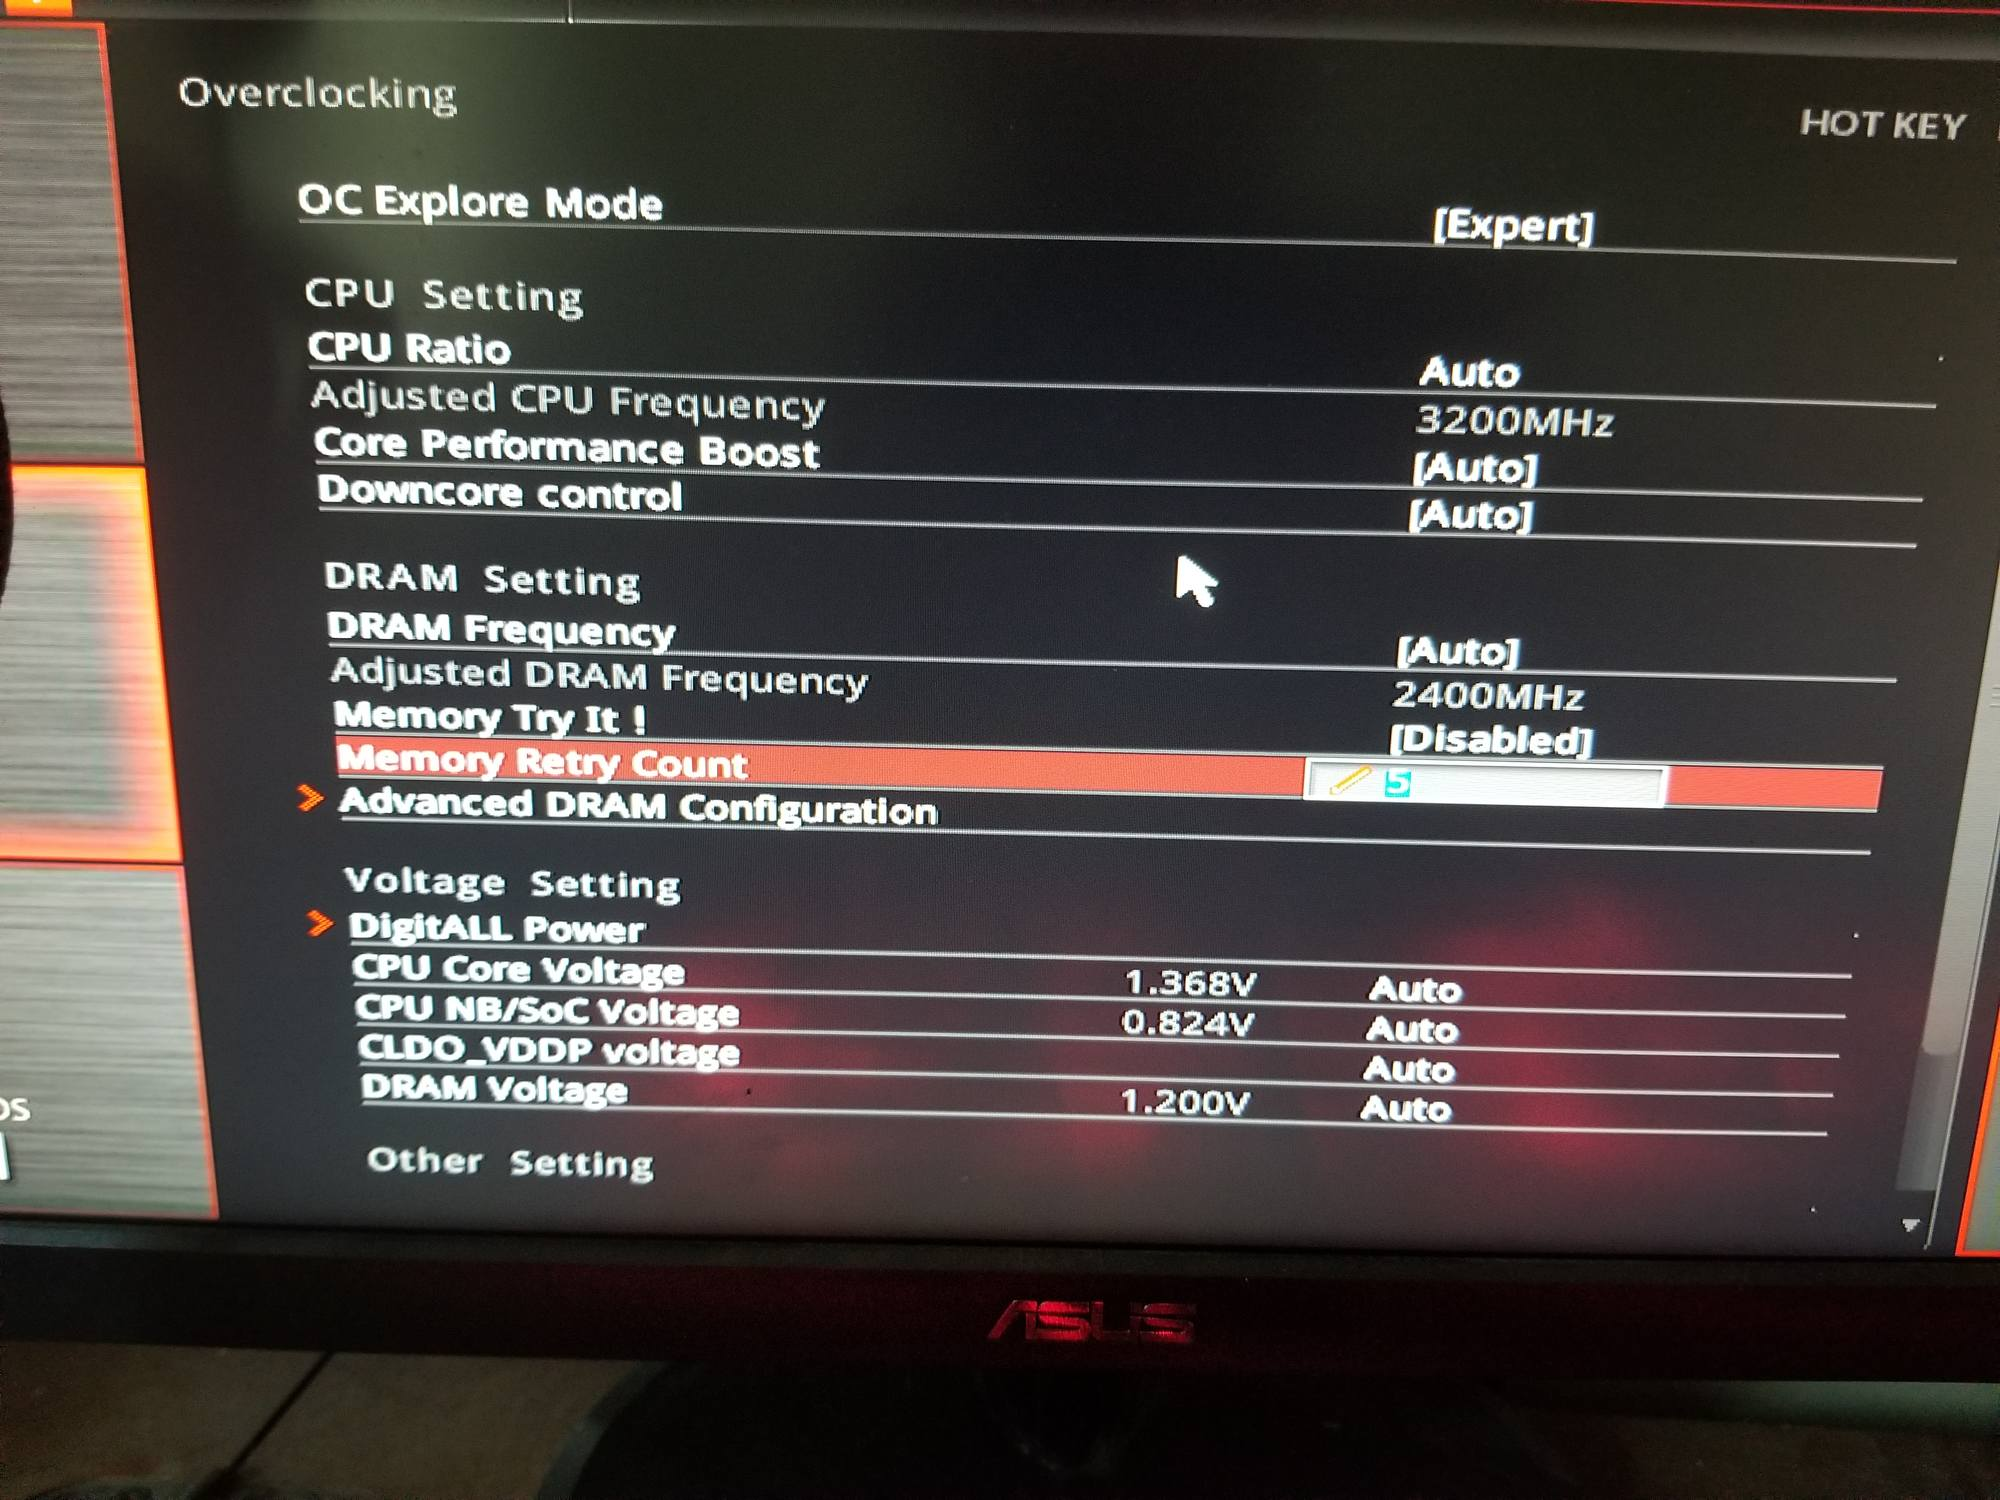 Ryzen 7 2700 not reaching 4 1ghz stock - CPUs, Motherboards, and